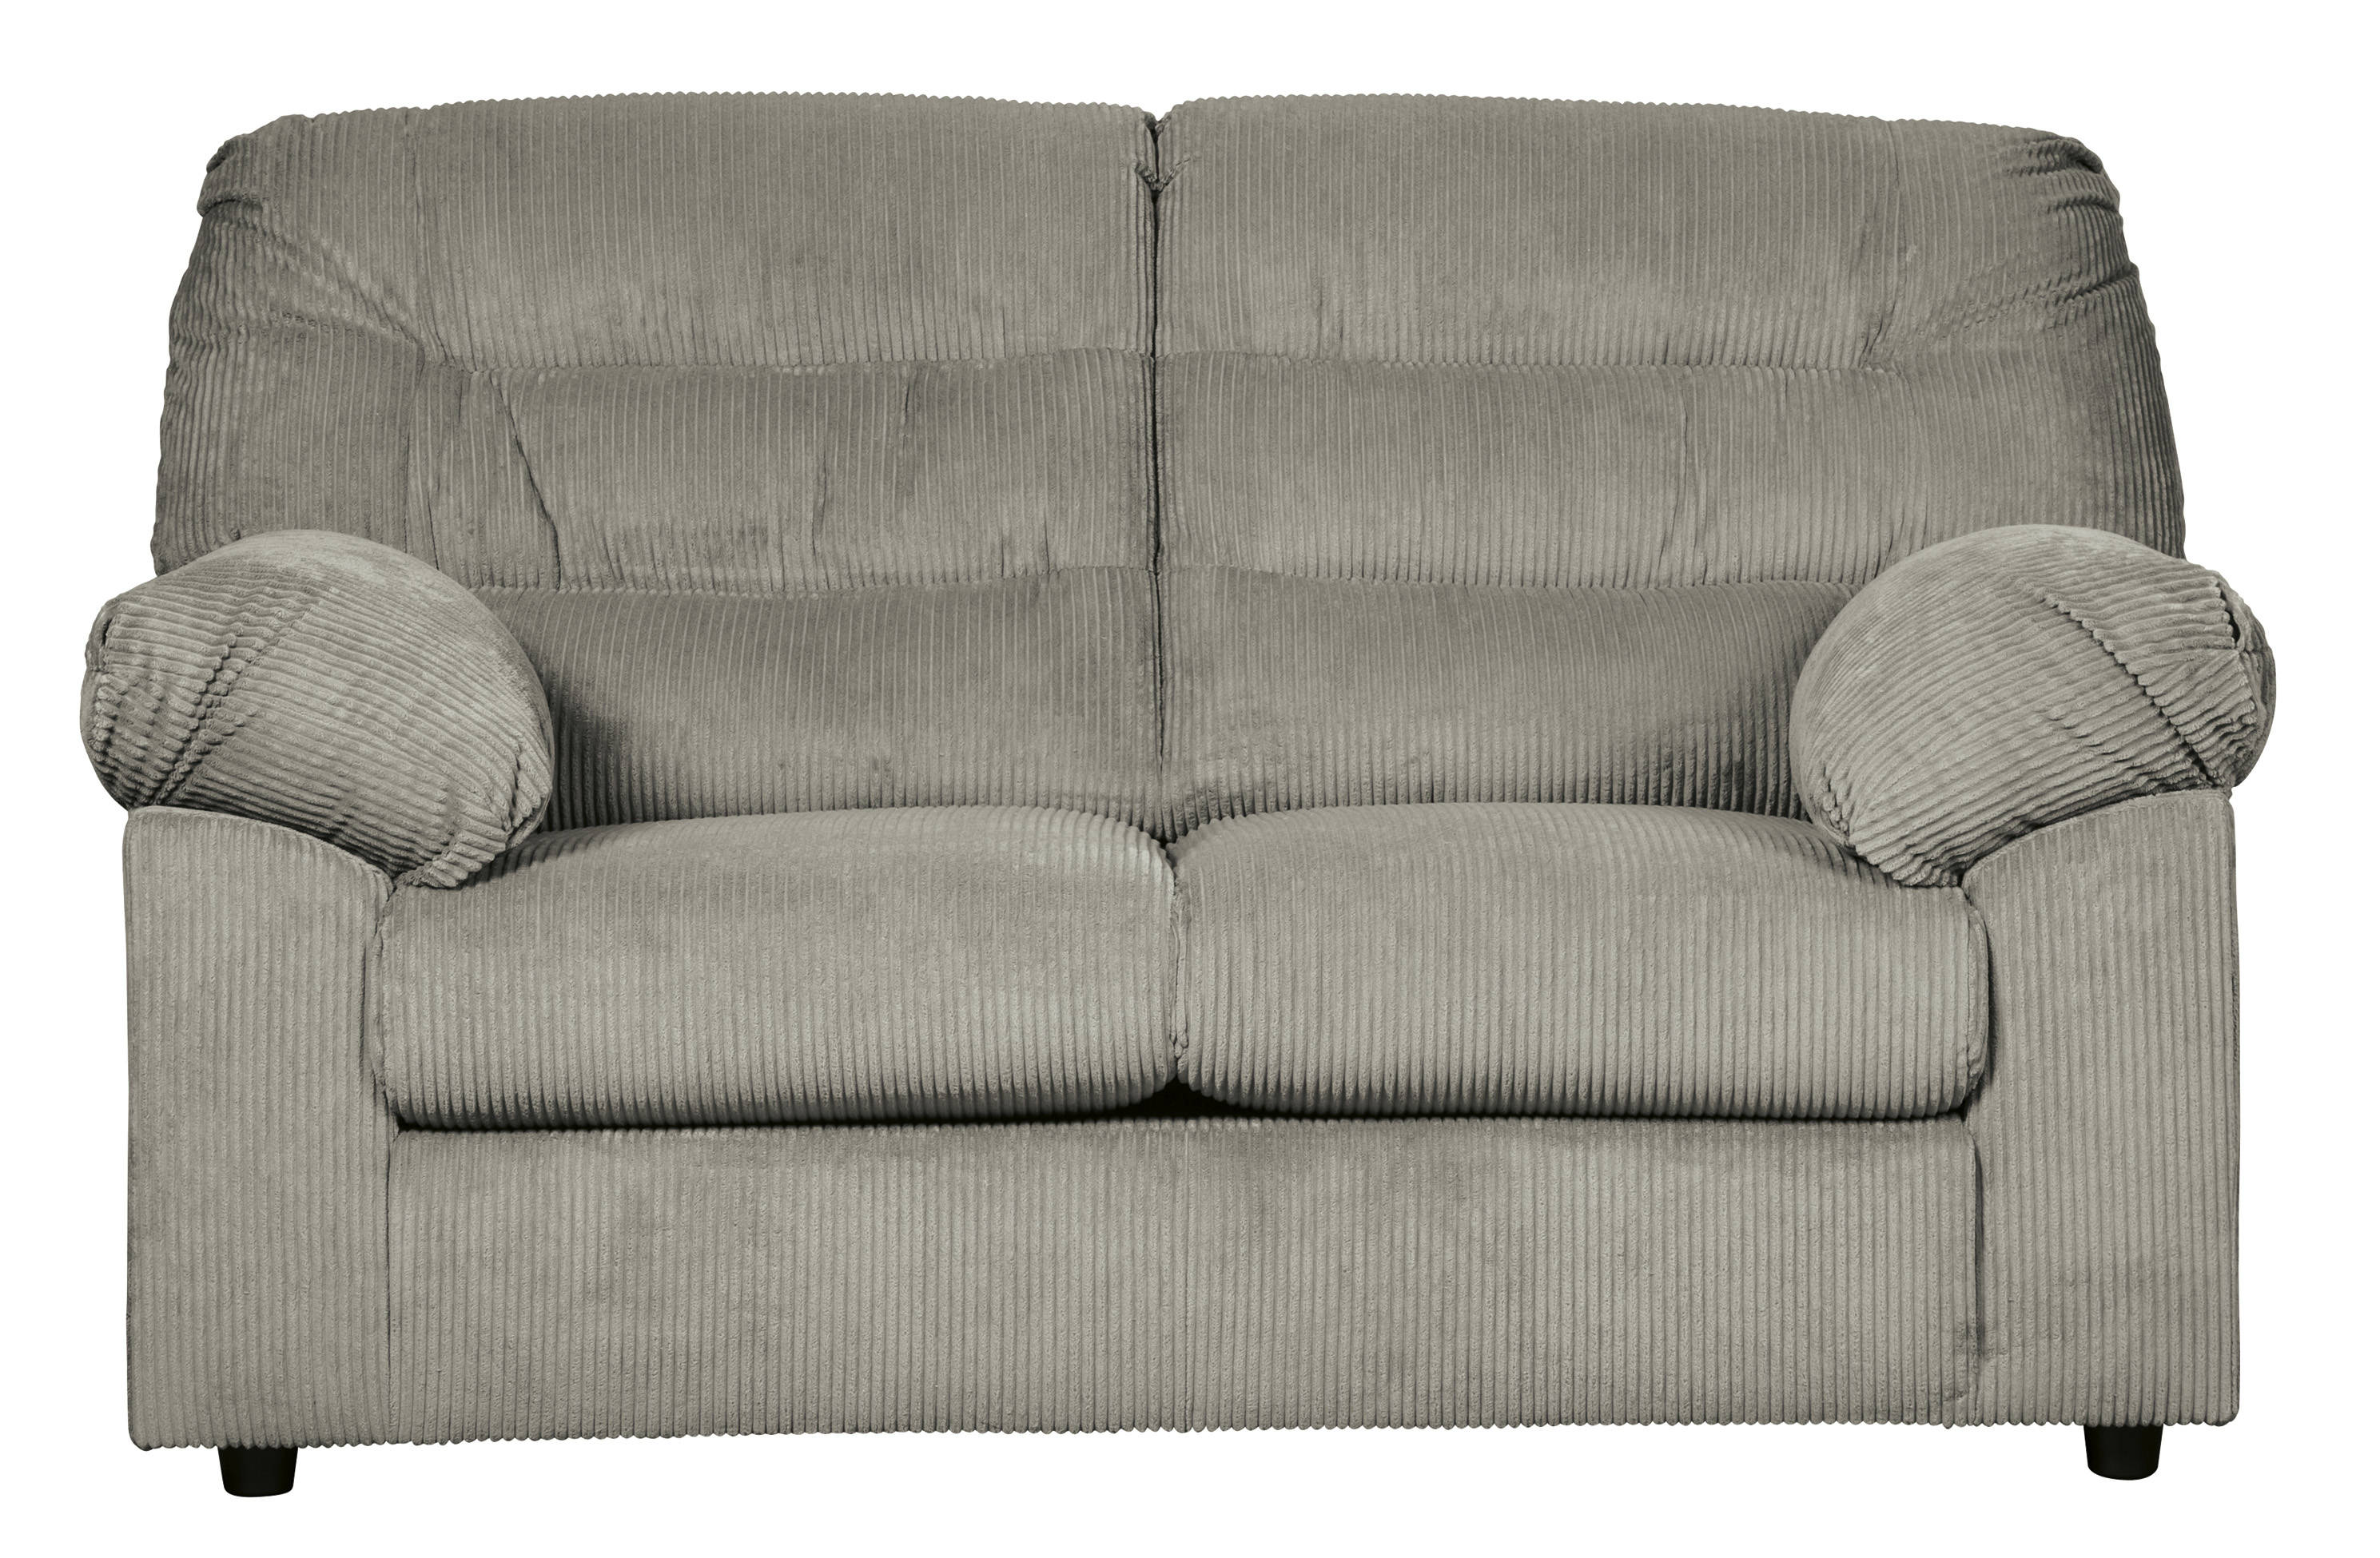 Terrific Ashley Furniture Gosnell Gray Loveseat The Classy Home Beutiful Home Inspiration Cosmmahrainfo